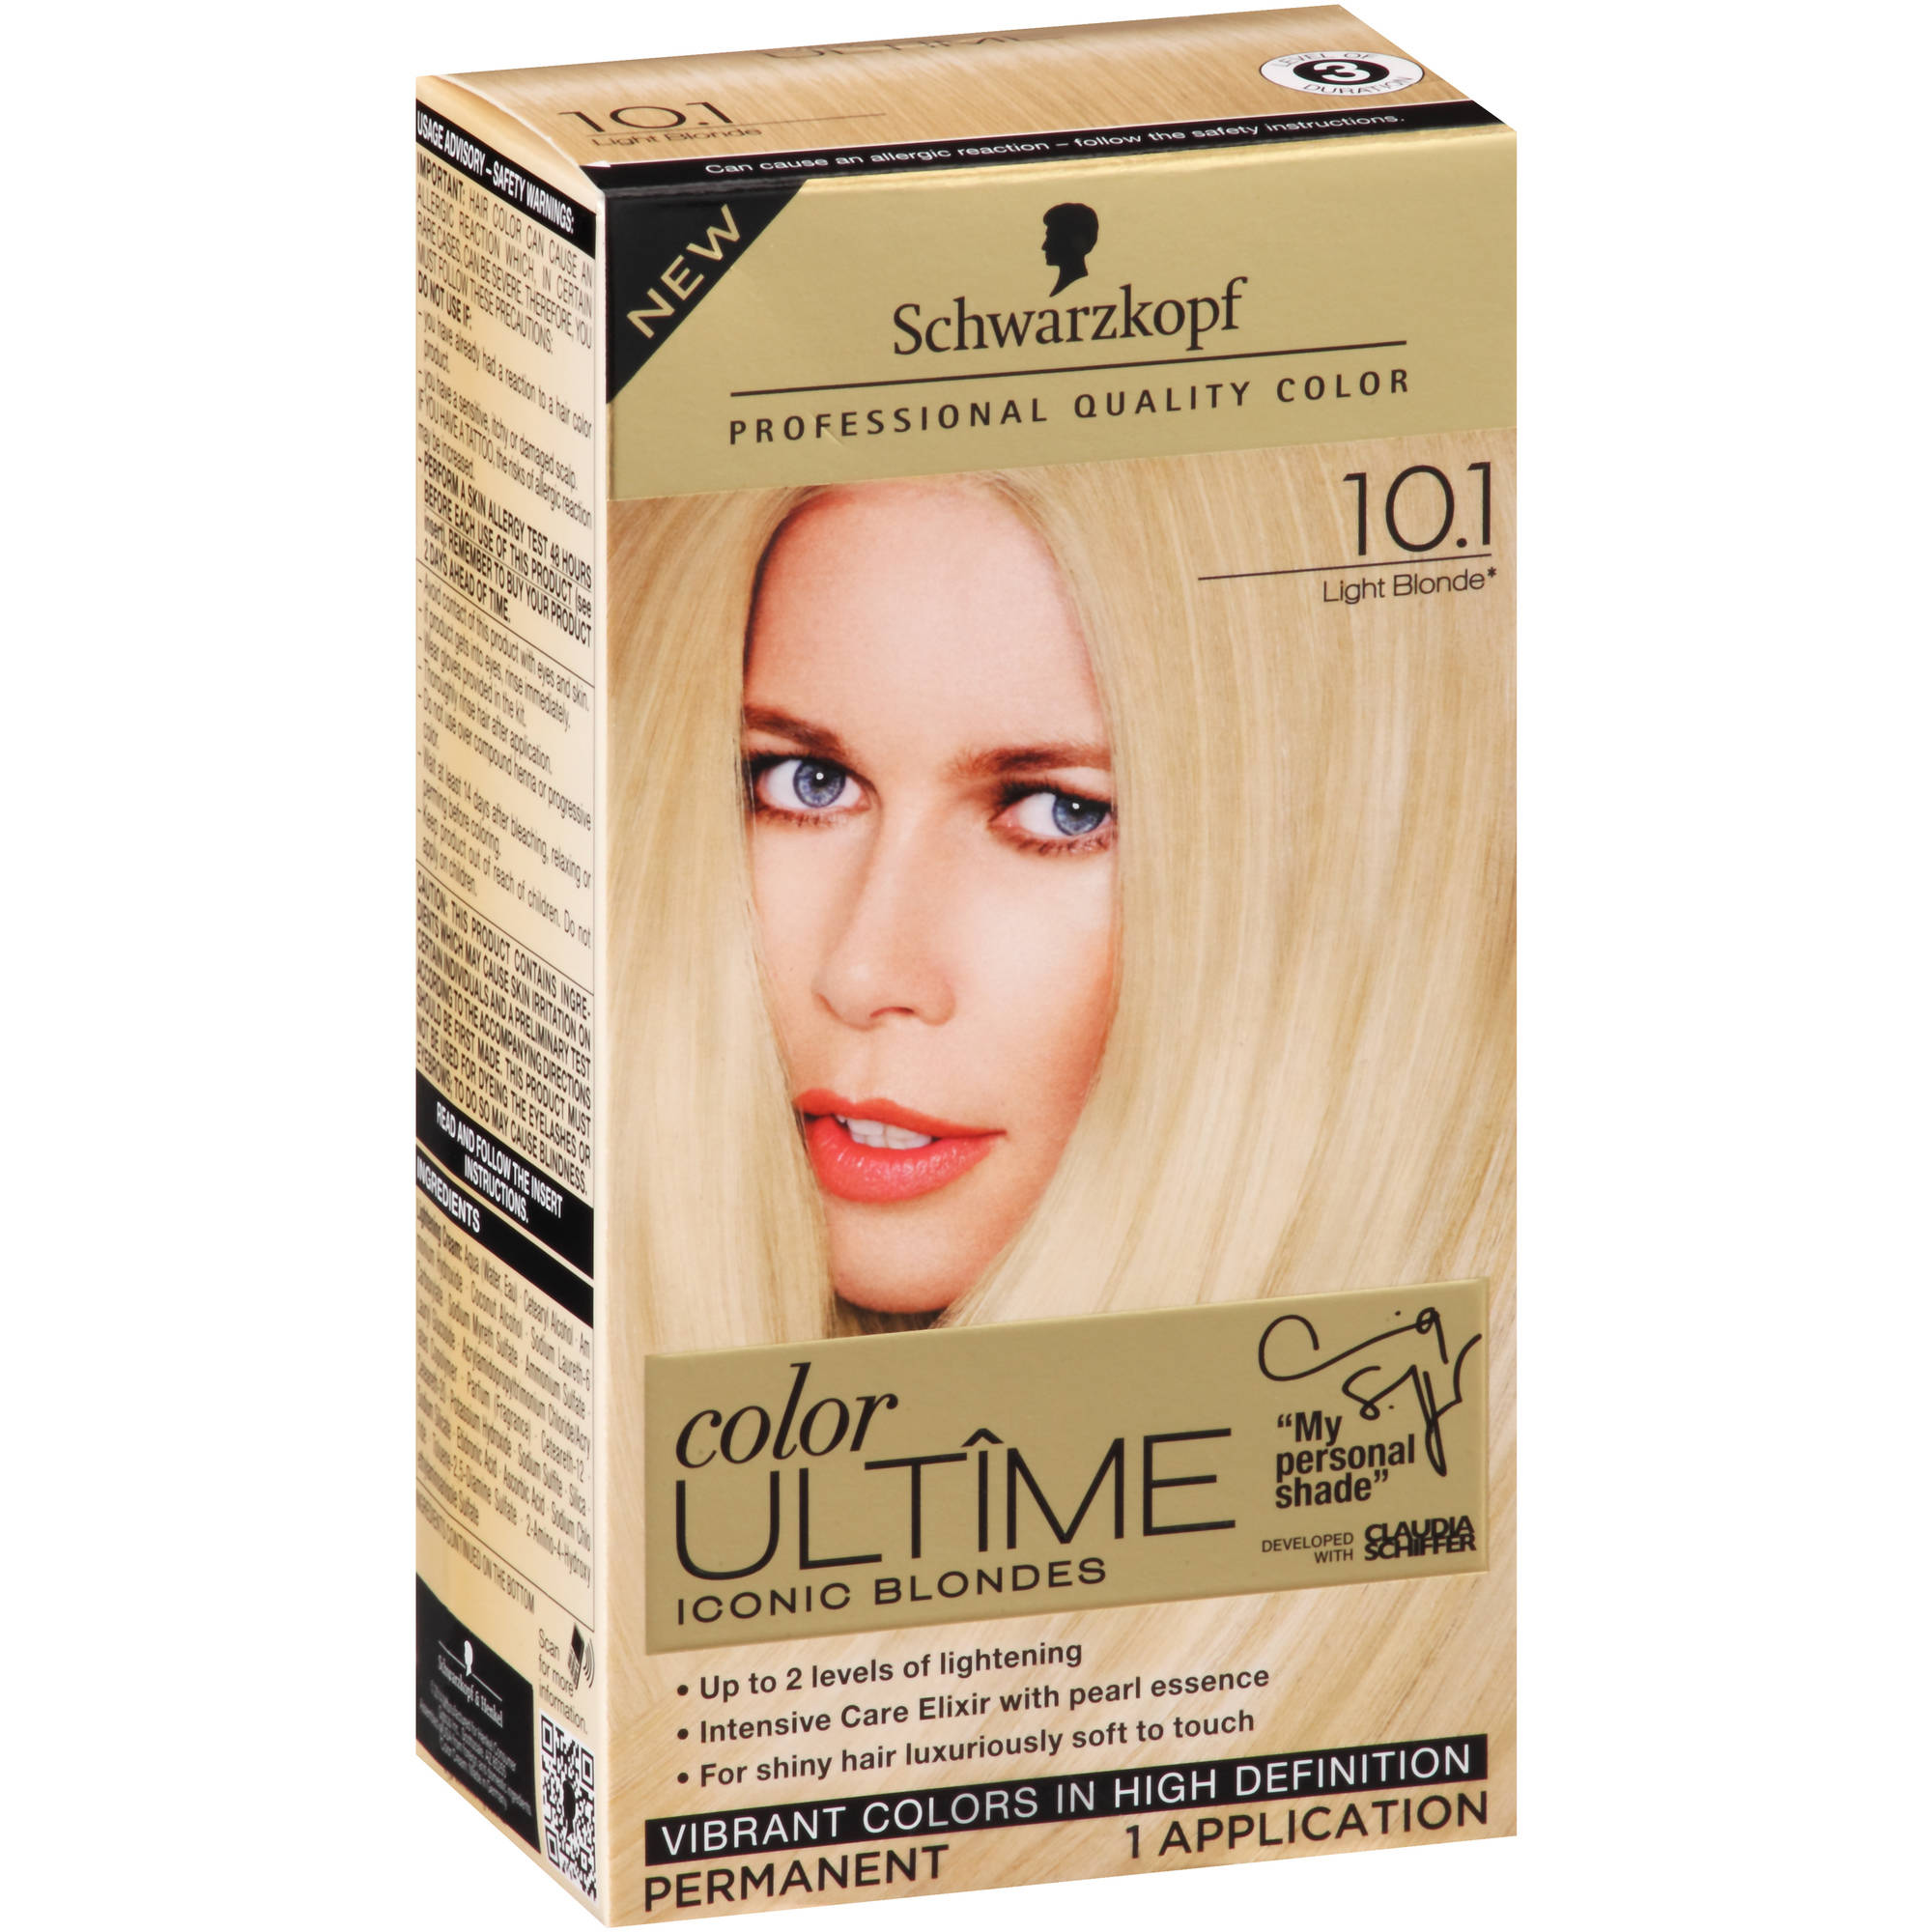 Schwarzkopf Color Ultime Iconic Blondes Hair Coloring Kit, 10.1 Light Blonde